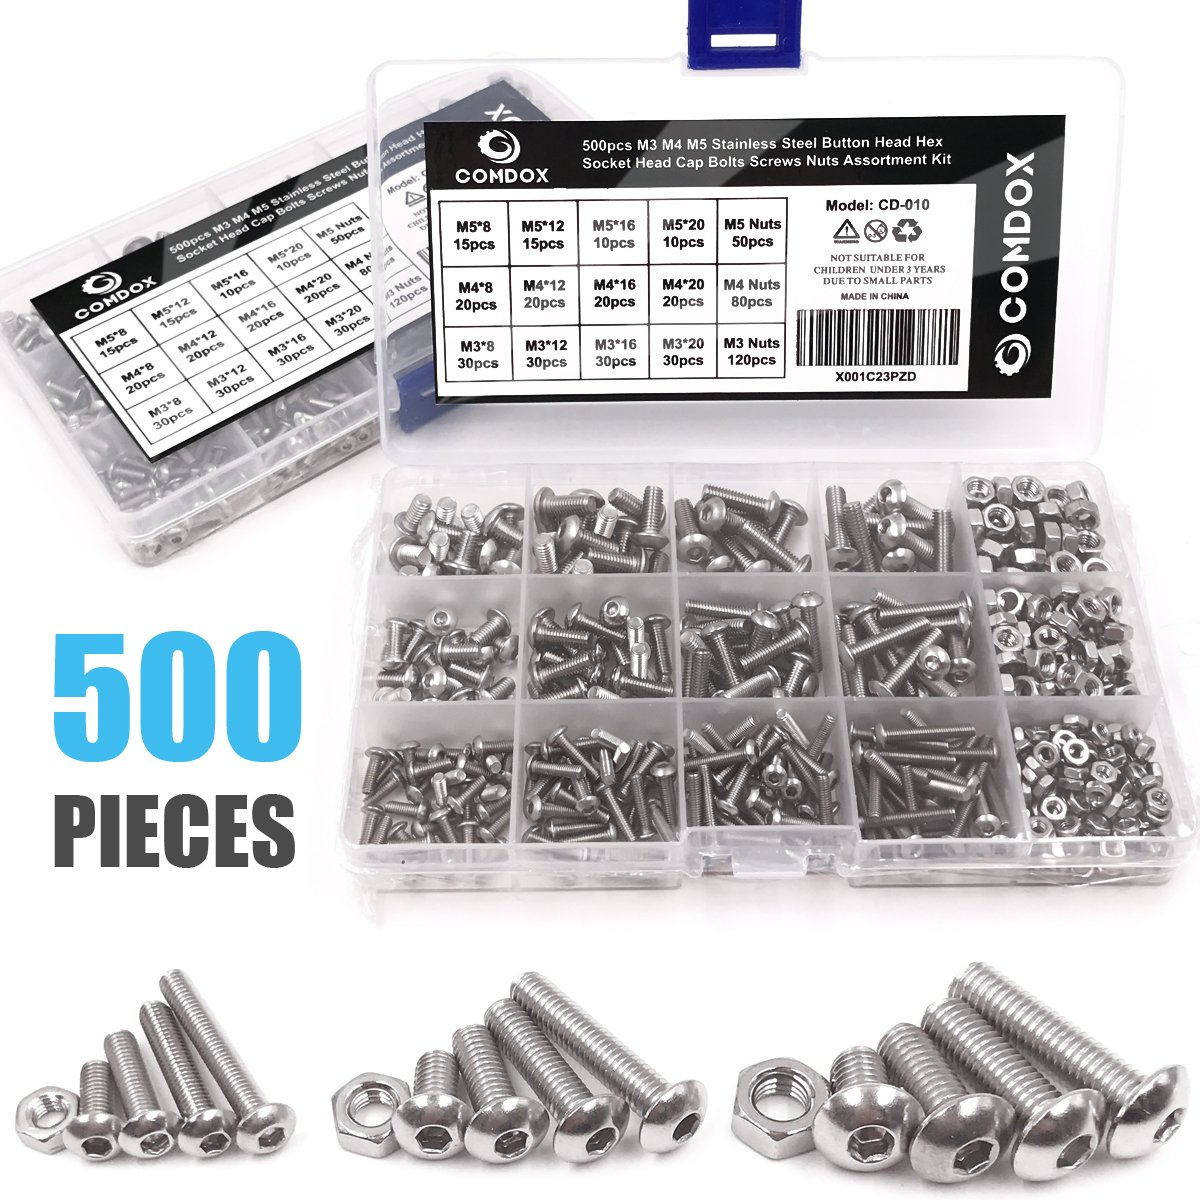 Details about Comdox 500Pcs M3 M4 M5 Stainless Steel Button Head Hex Socket  Head Cap Bolts